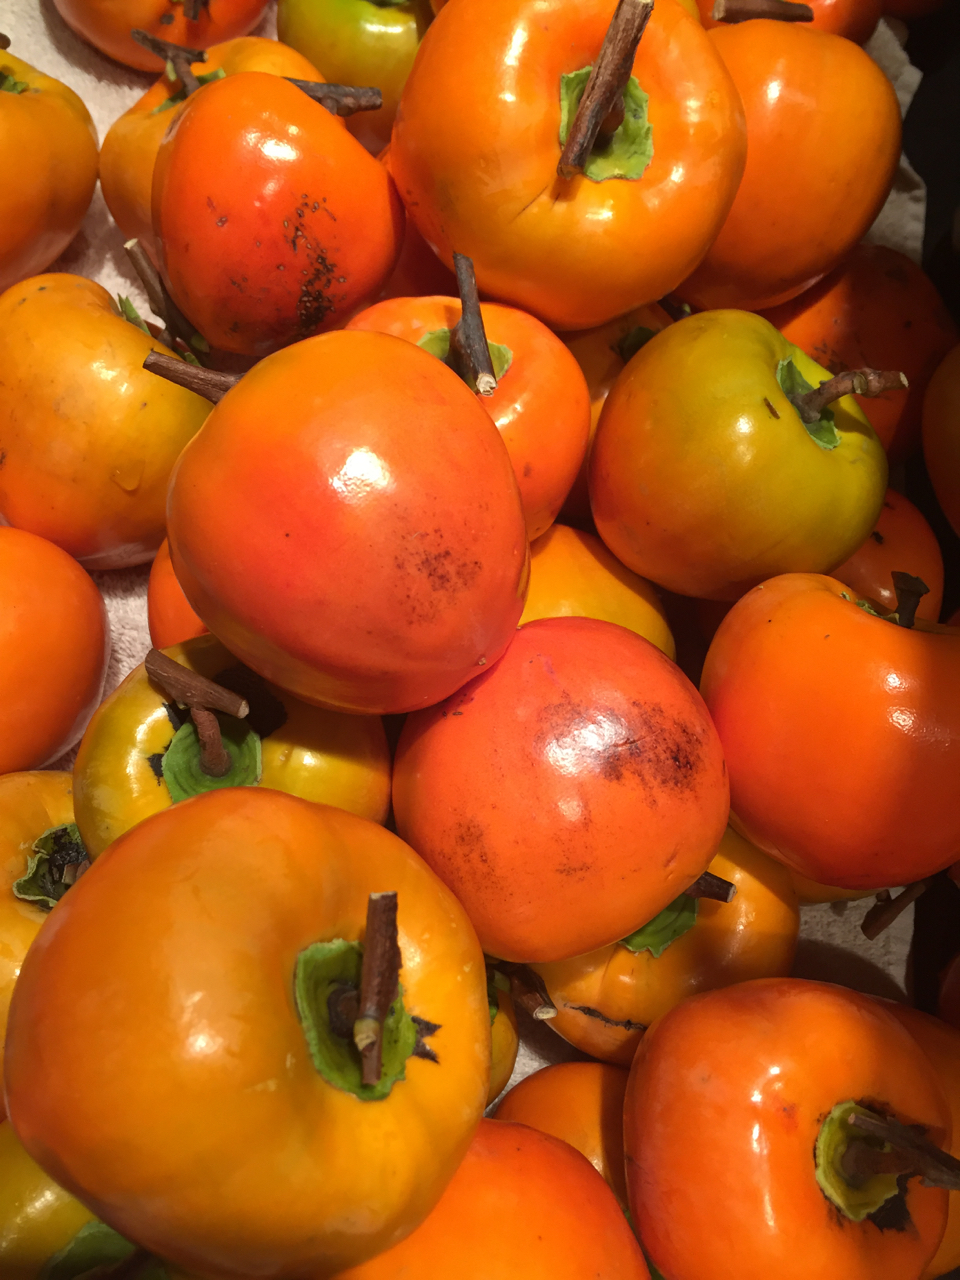 persimmons, washed and trimmed but not peeled